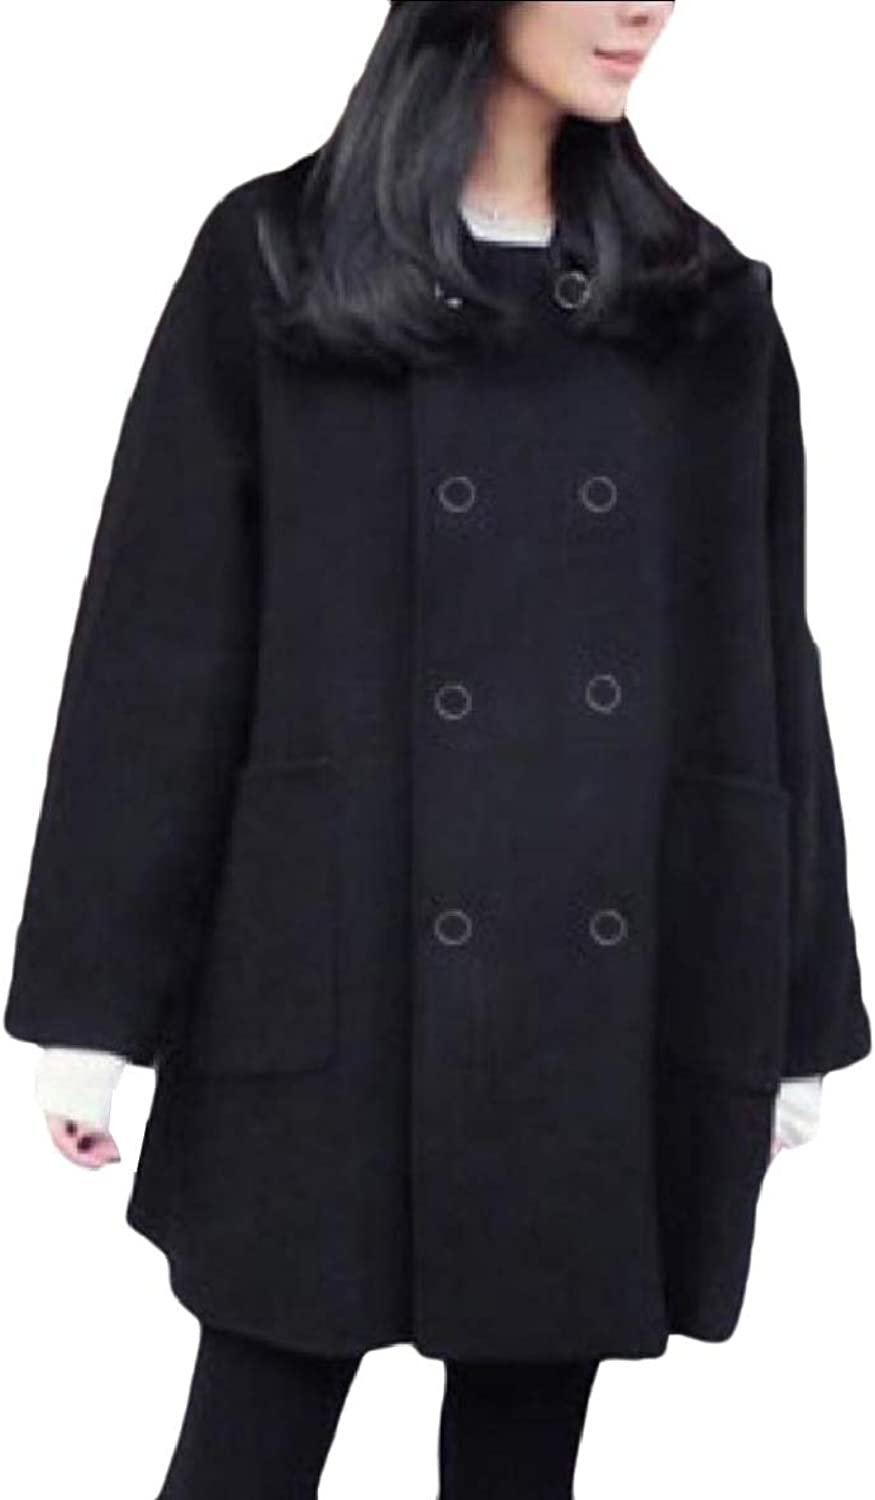 Coolhere Womens Classics Notch Lapel Fleece Curvy Double Button Pea Coat